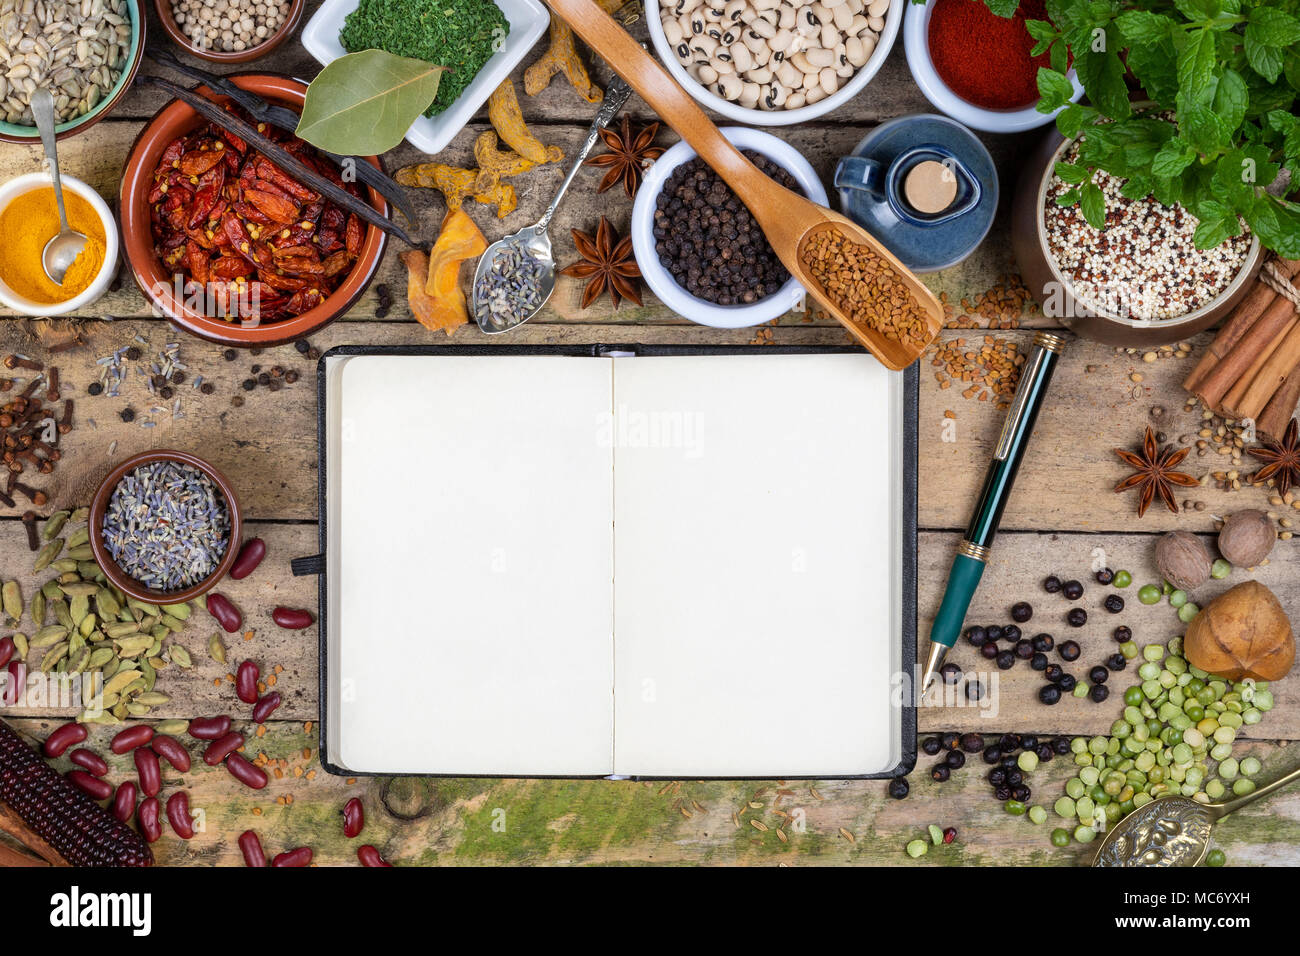 Selection of Herbs and Spices used in cooking to add flavor and seasoning - Space for text. - Stock Image